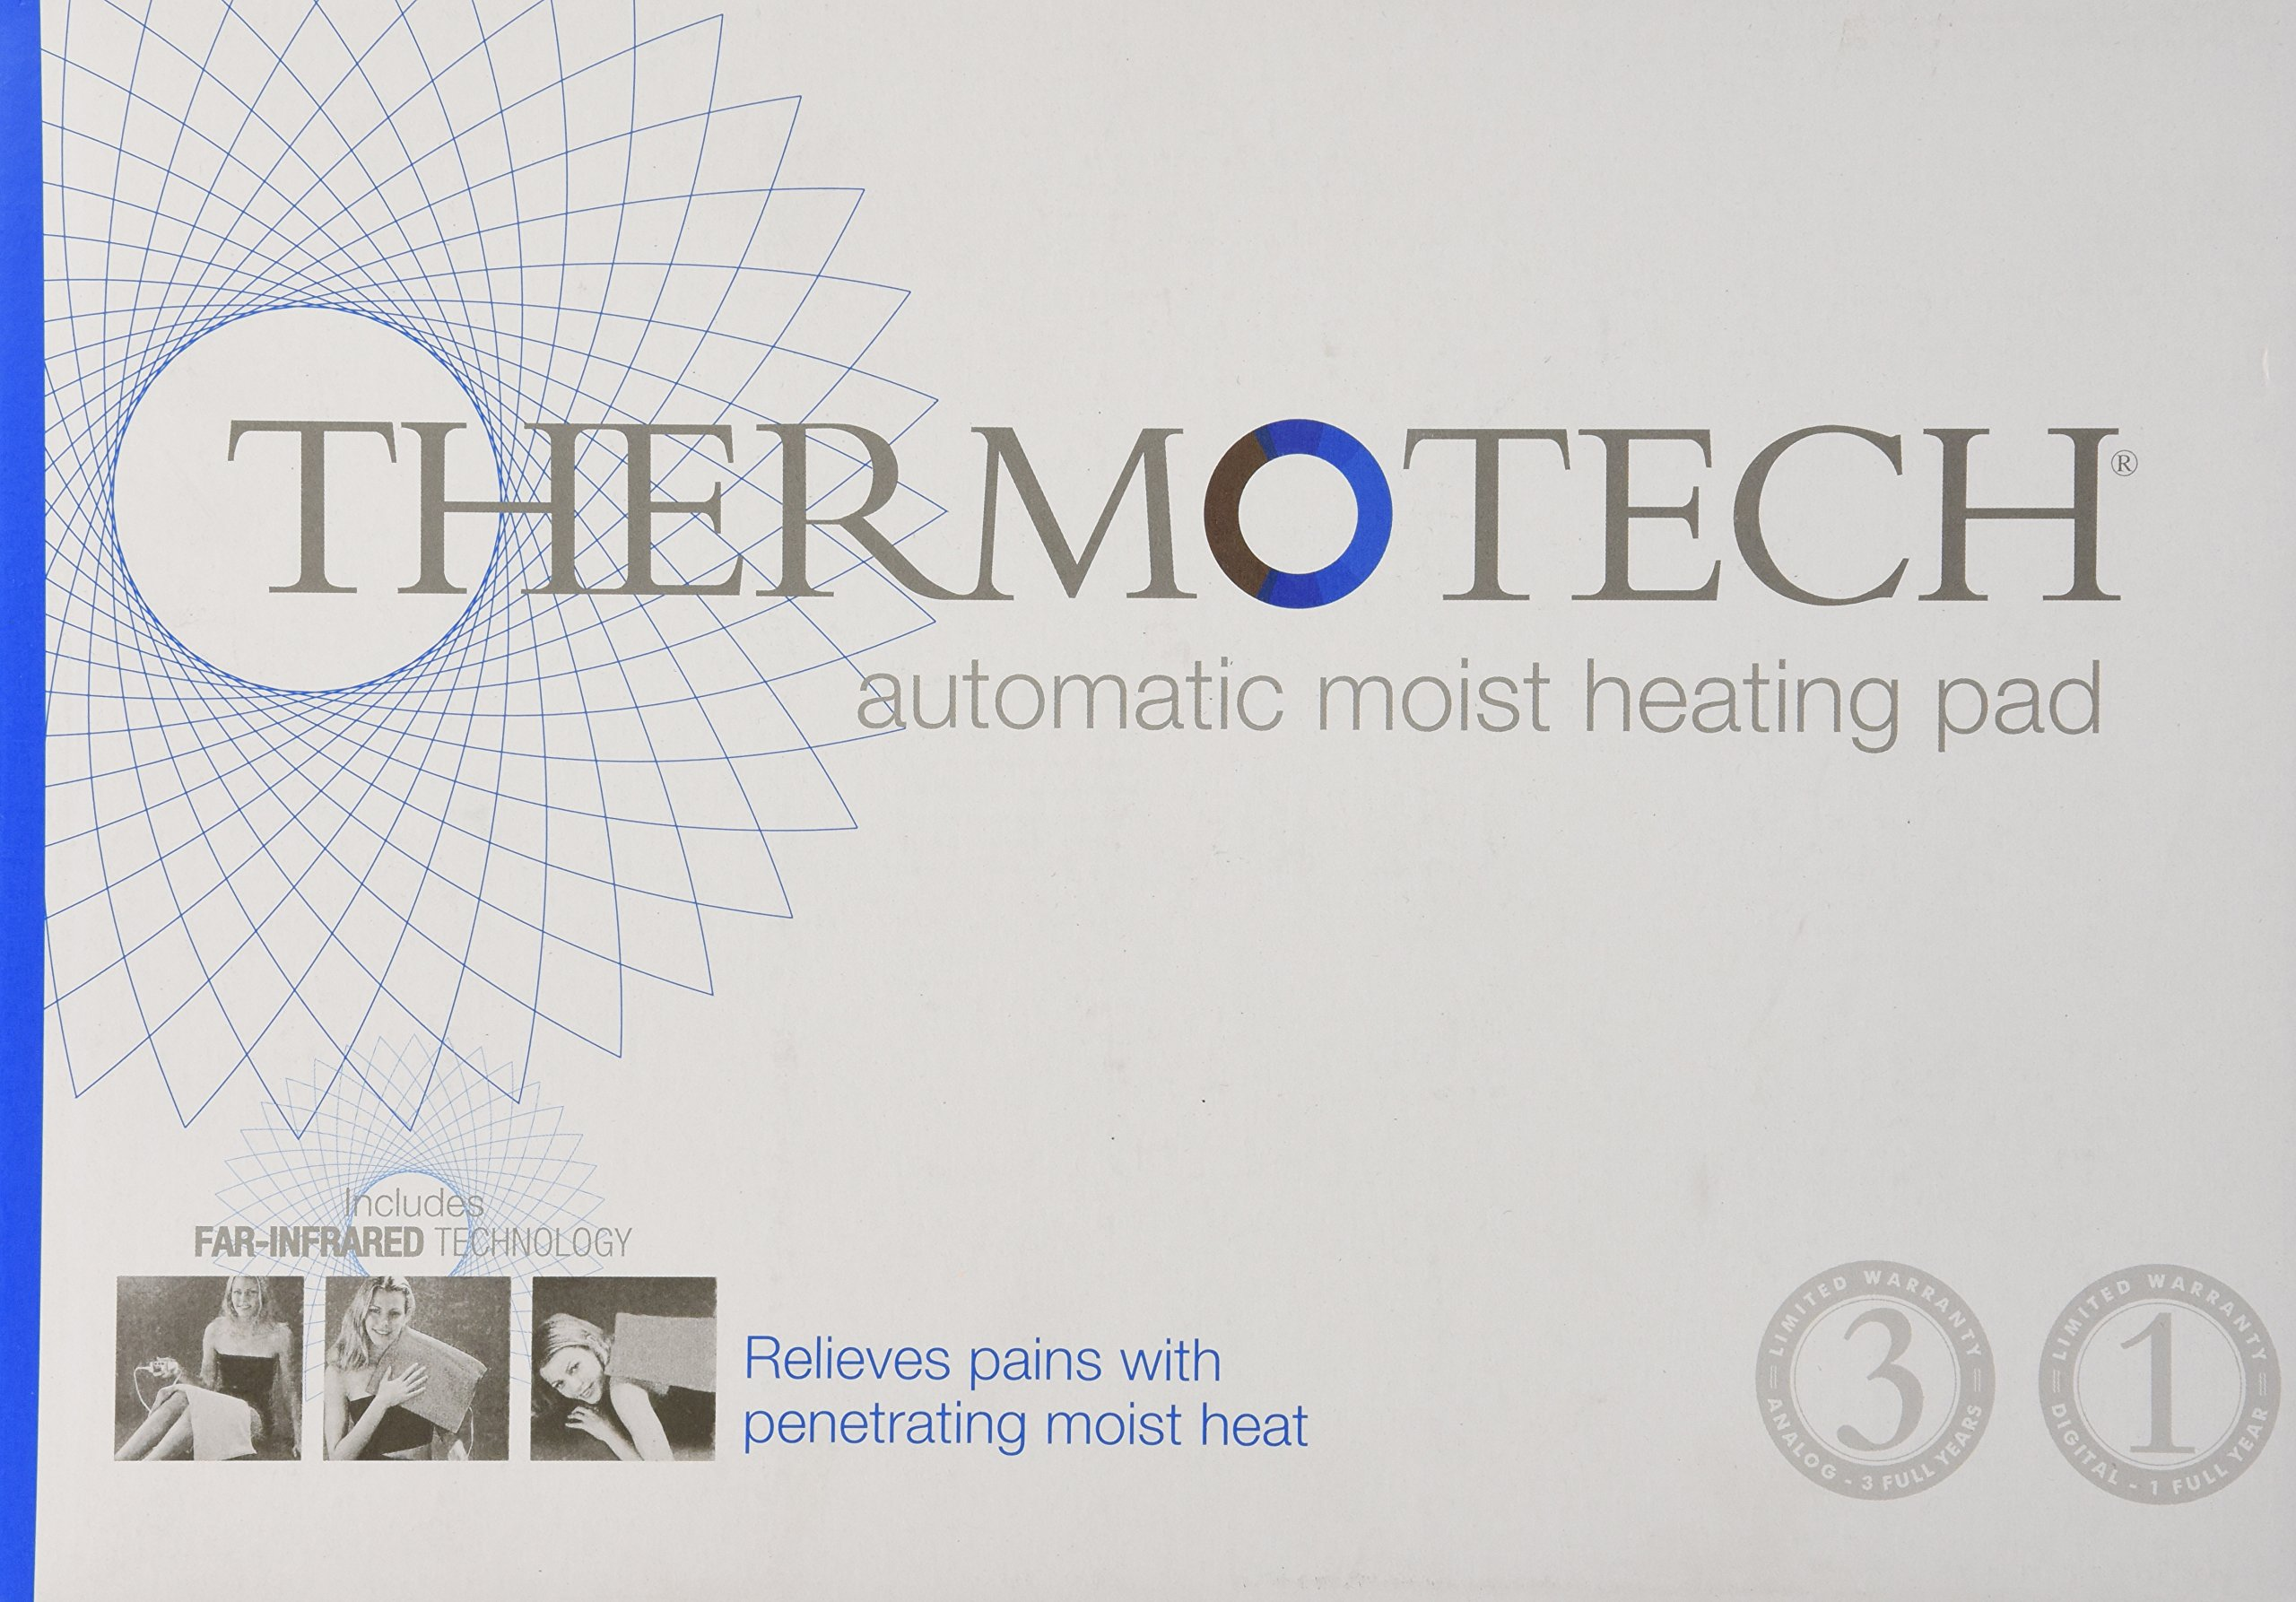 Thermotech Automatic Digital Moist Heating Pad Heating Pad, Neck and Shoulder, 18x18 by ThermoTech